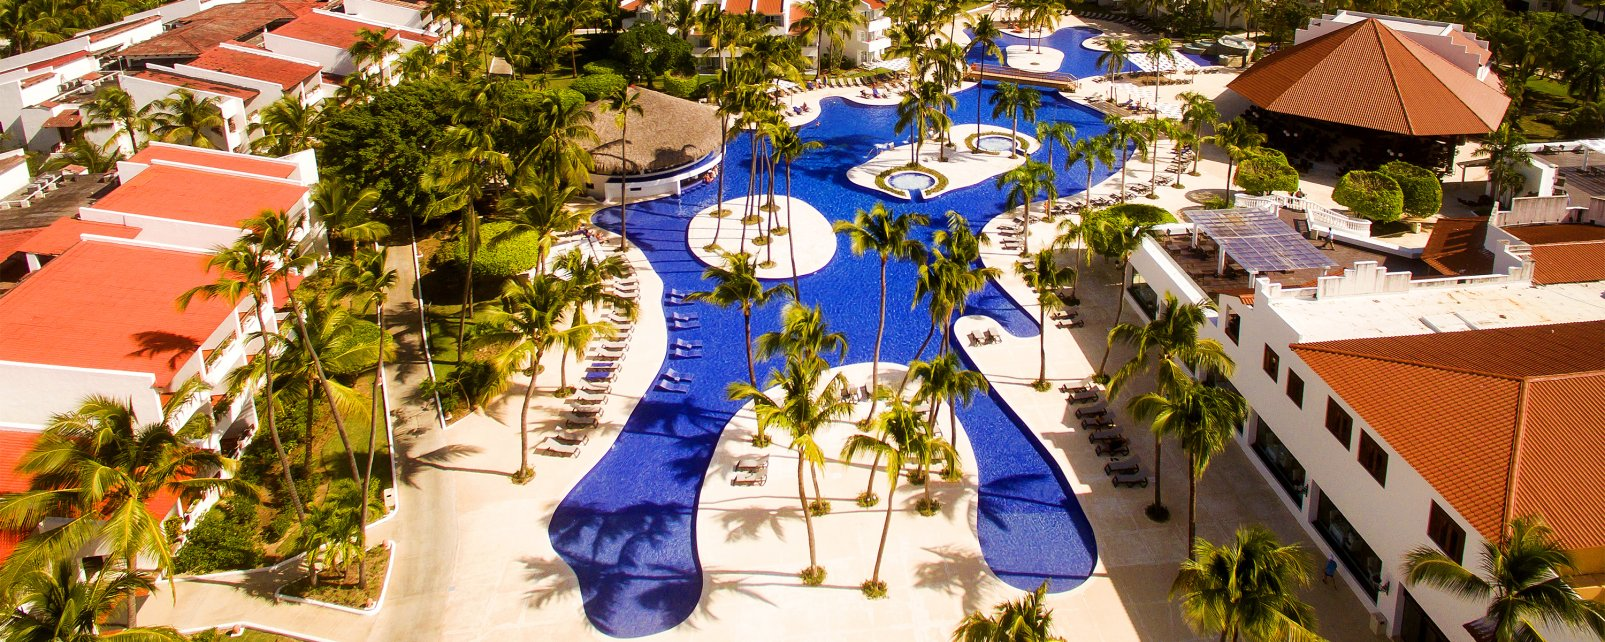 Hôtel Kappa Club Occidental Punta Cana